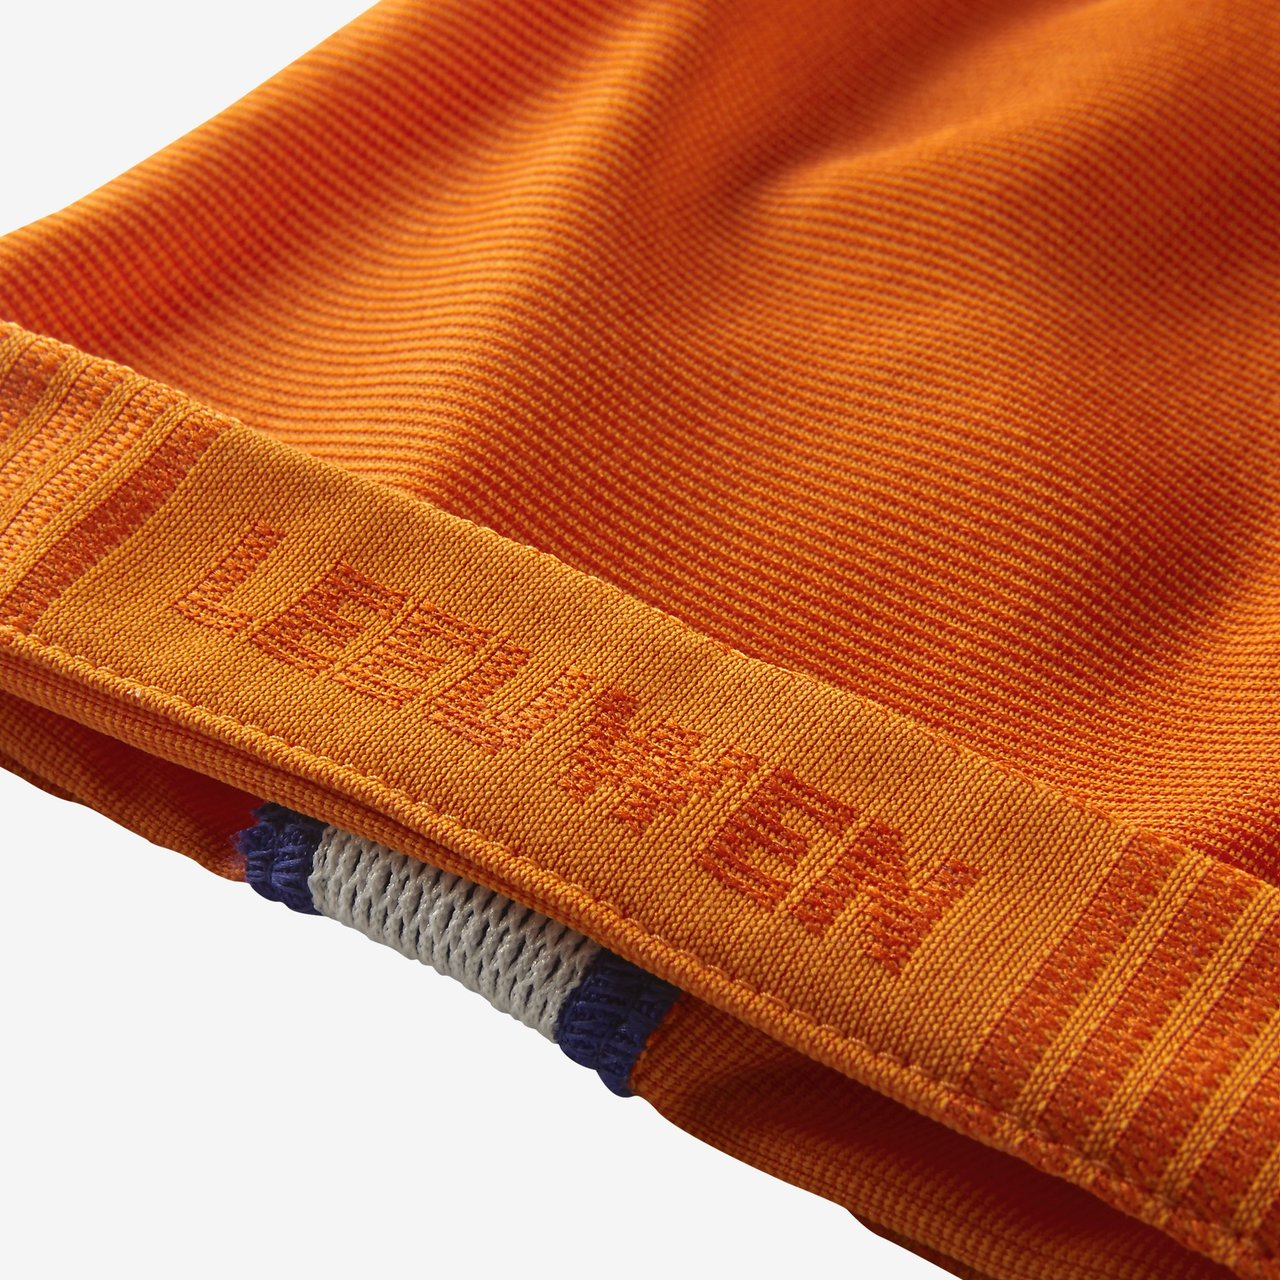 df87c33dd58 ... Click to enlarge image holland-2016-nike-home-football-shirt-